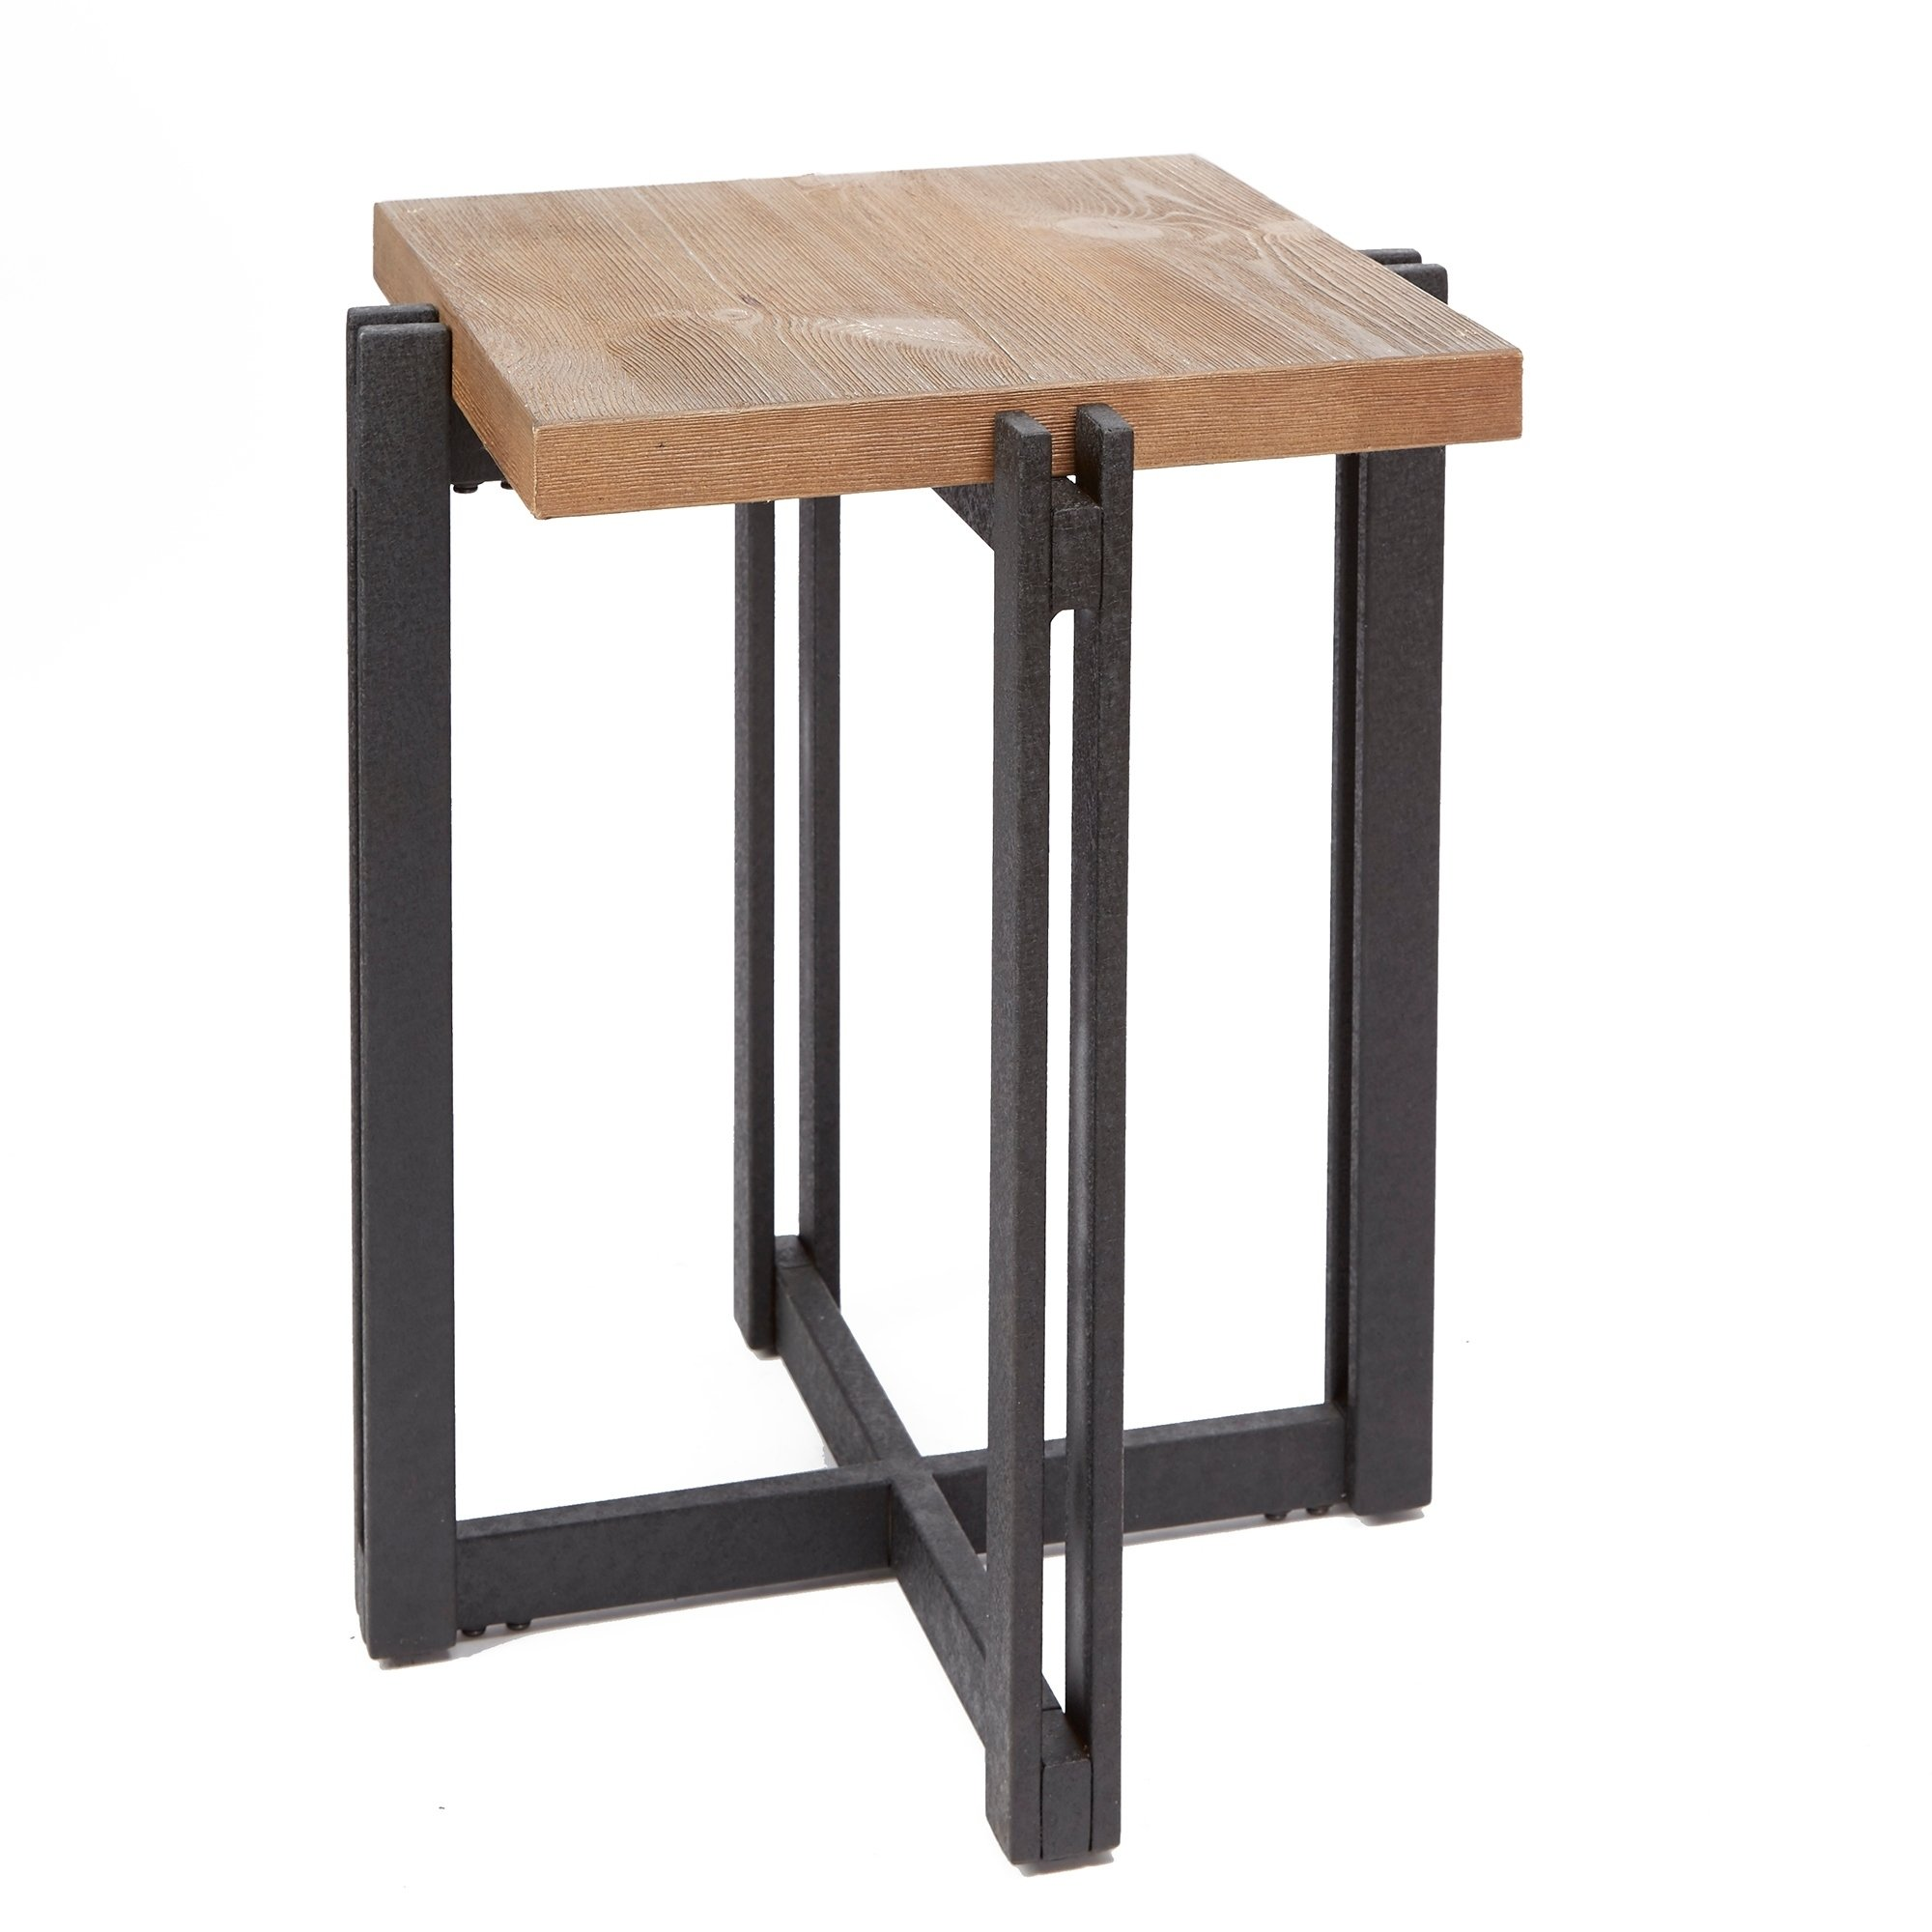 dakota accent table with square wood top free shipping today pier one imports clearance furniture small acrylic console nate berkus bedding astoria patio rattan side covers for